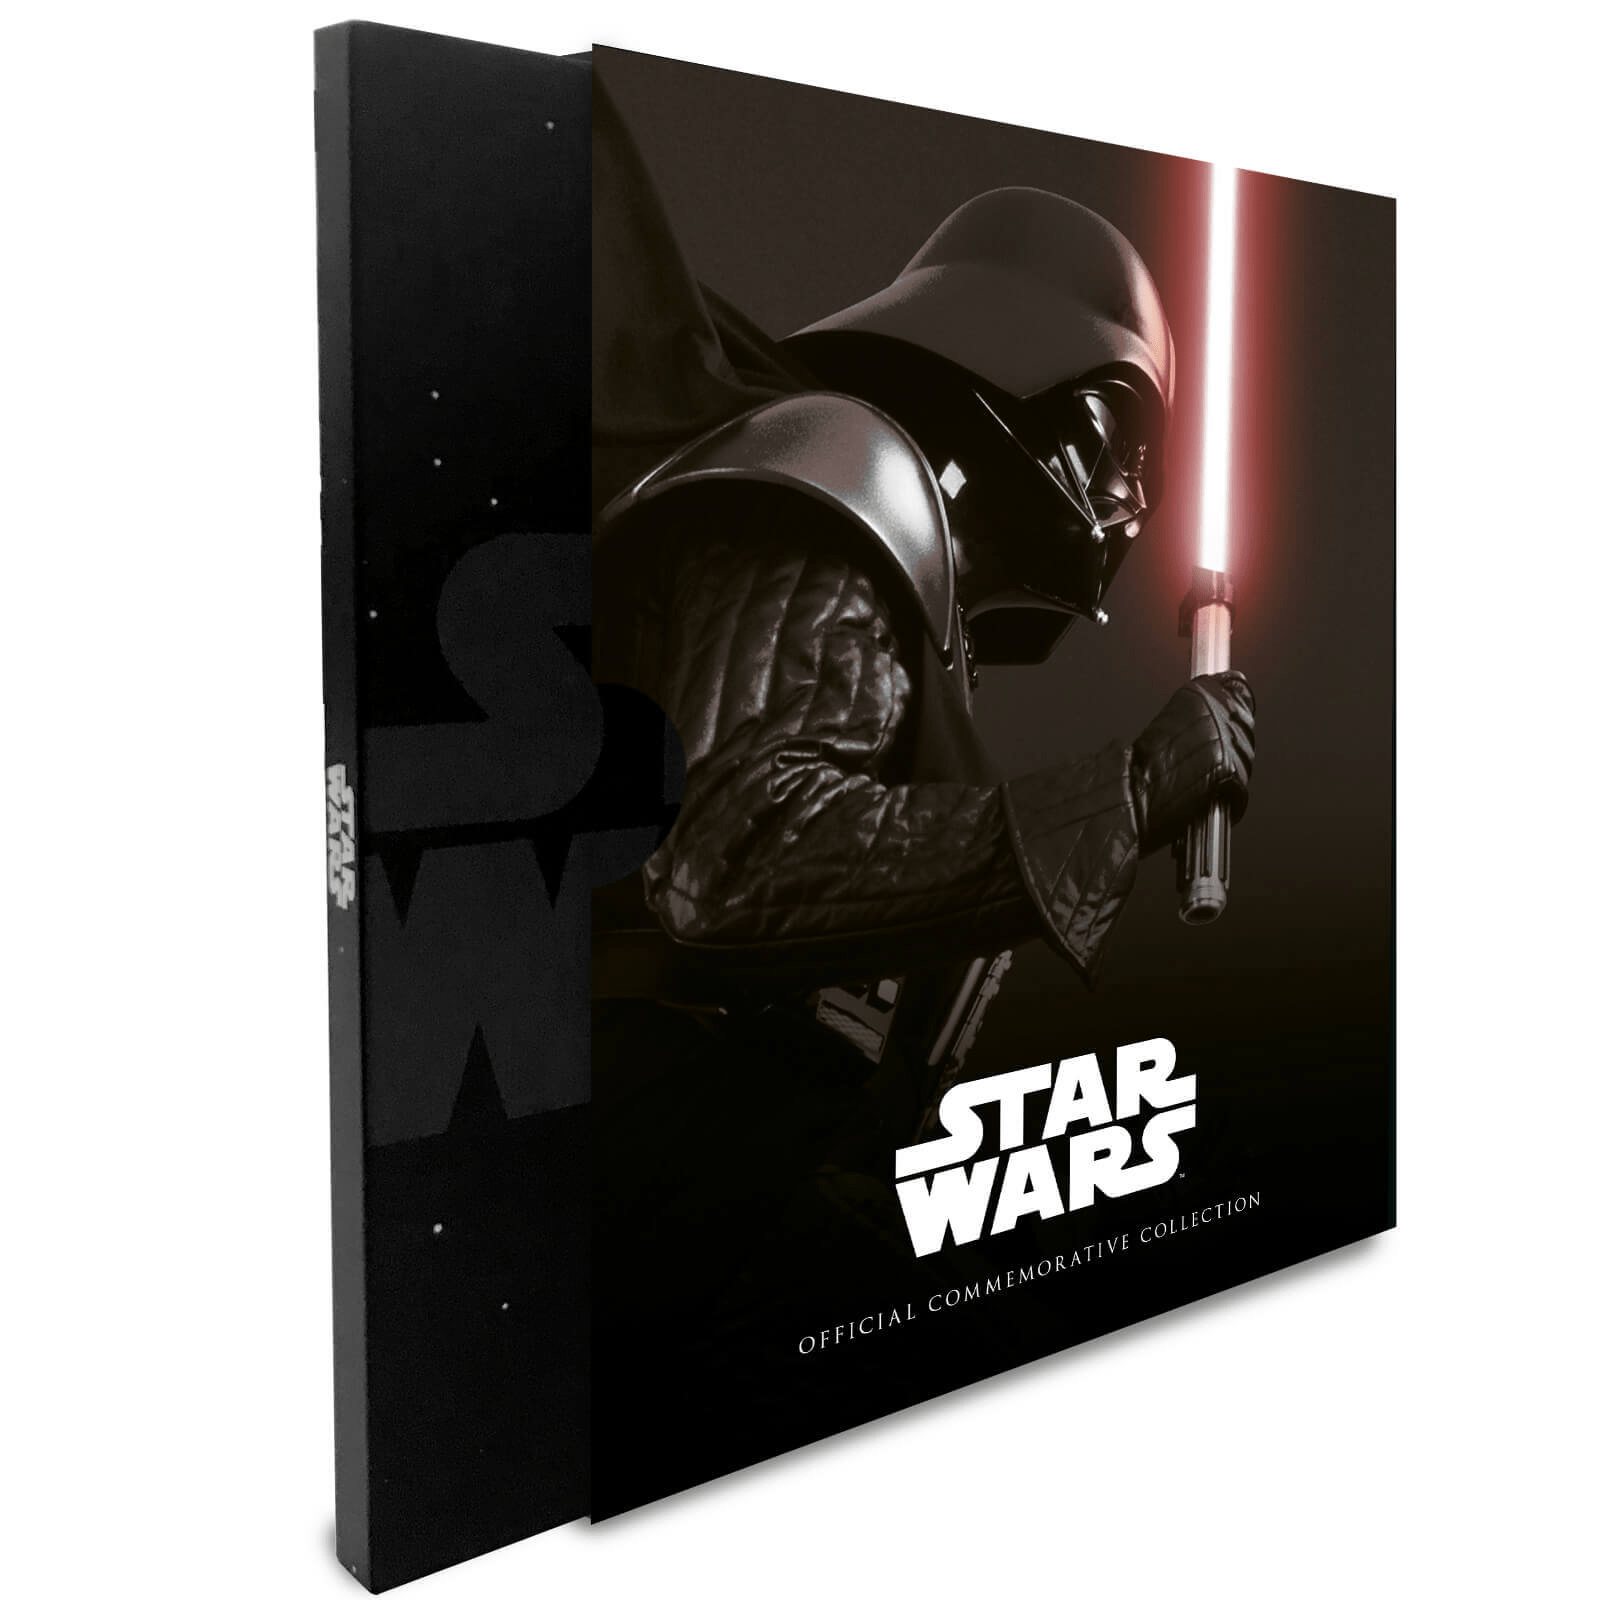 2019 Star Wars Limited Edition Collectible Coin Advent Calendar Available Now!